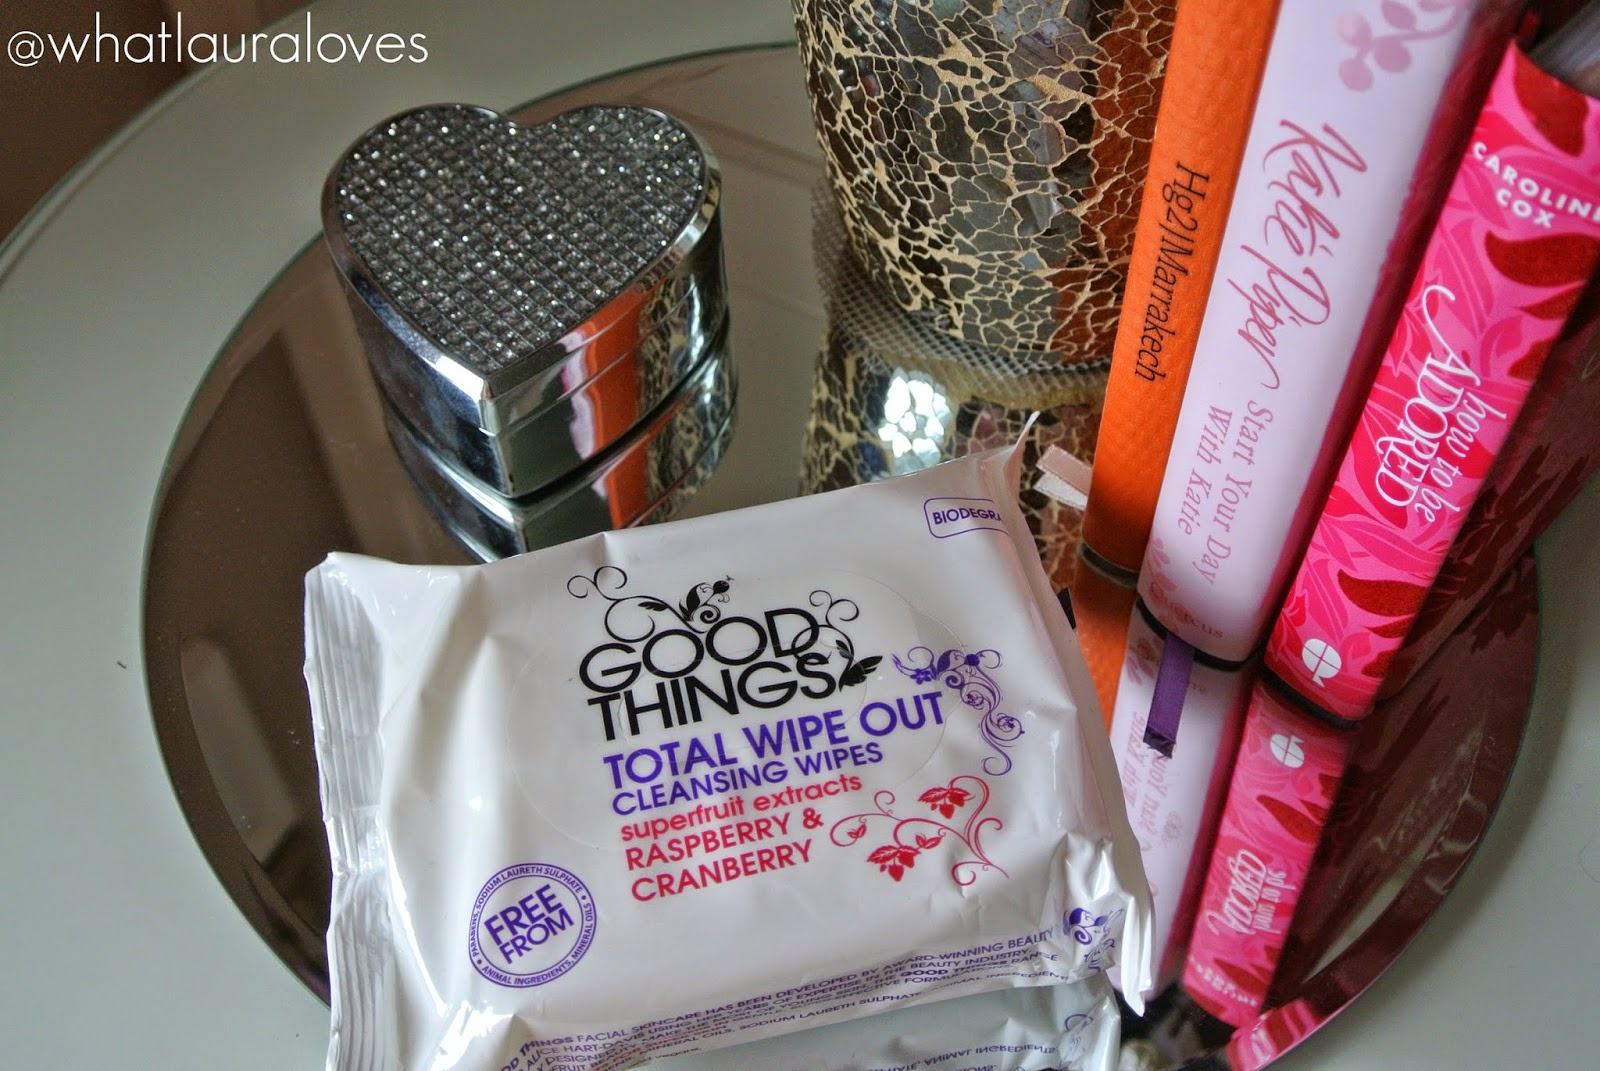 Good Things Total Wipe Out Cleansing Wipes Review Boots